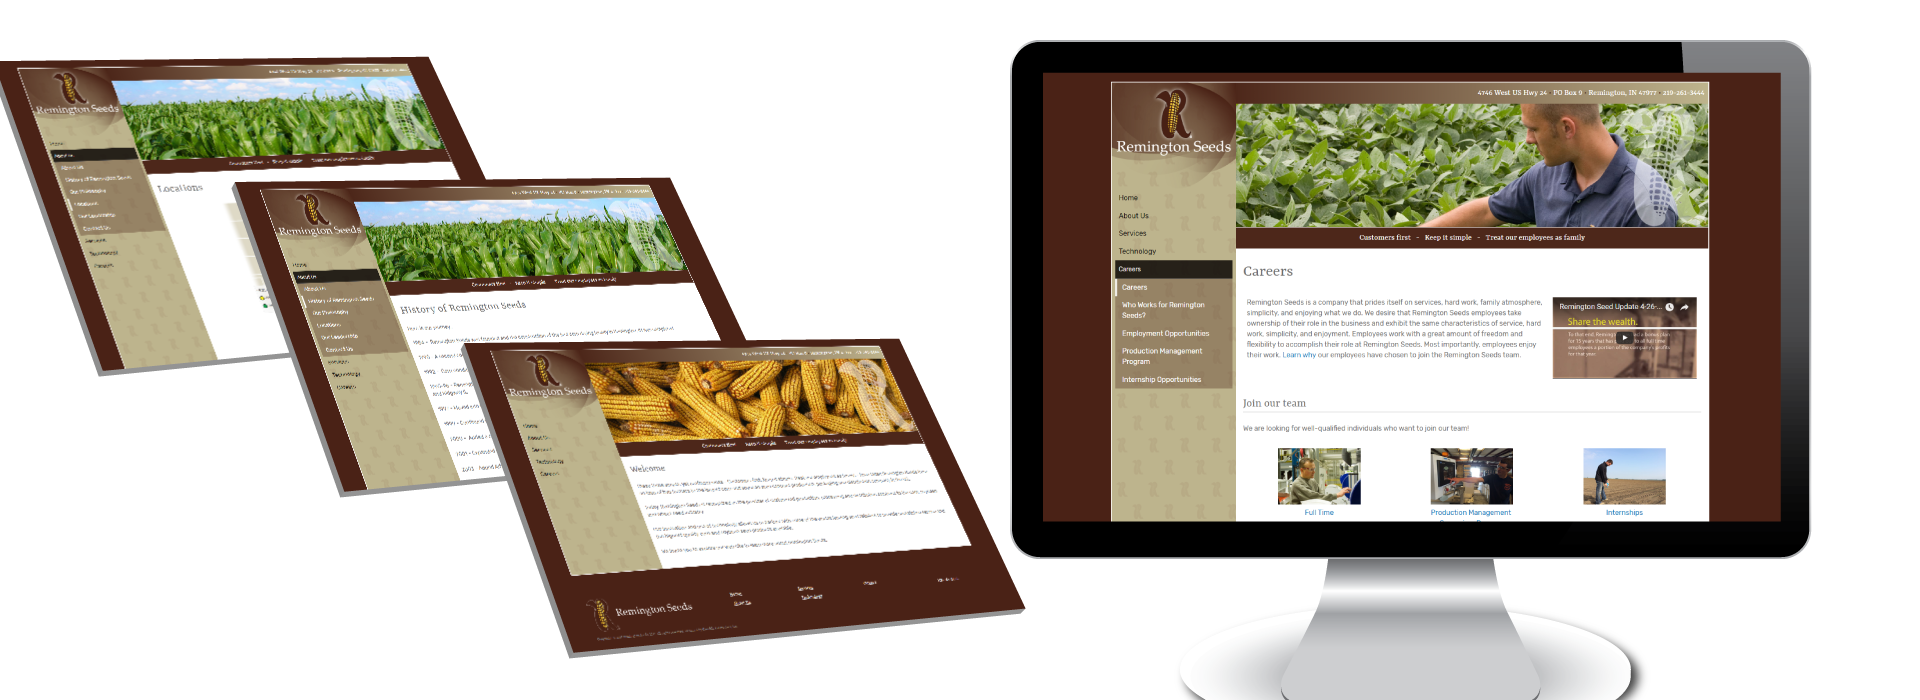 Screen Captures of example project: Branding and Web Design - Remington Seeds